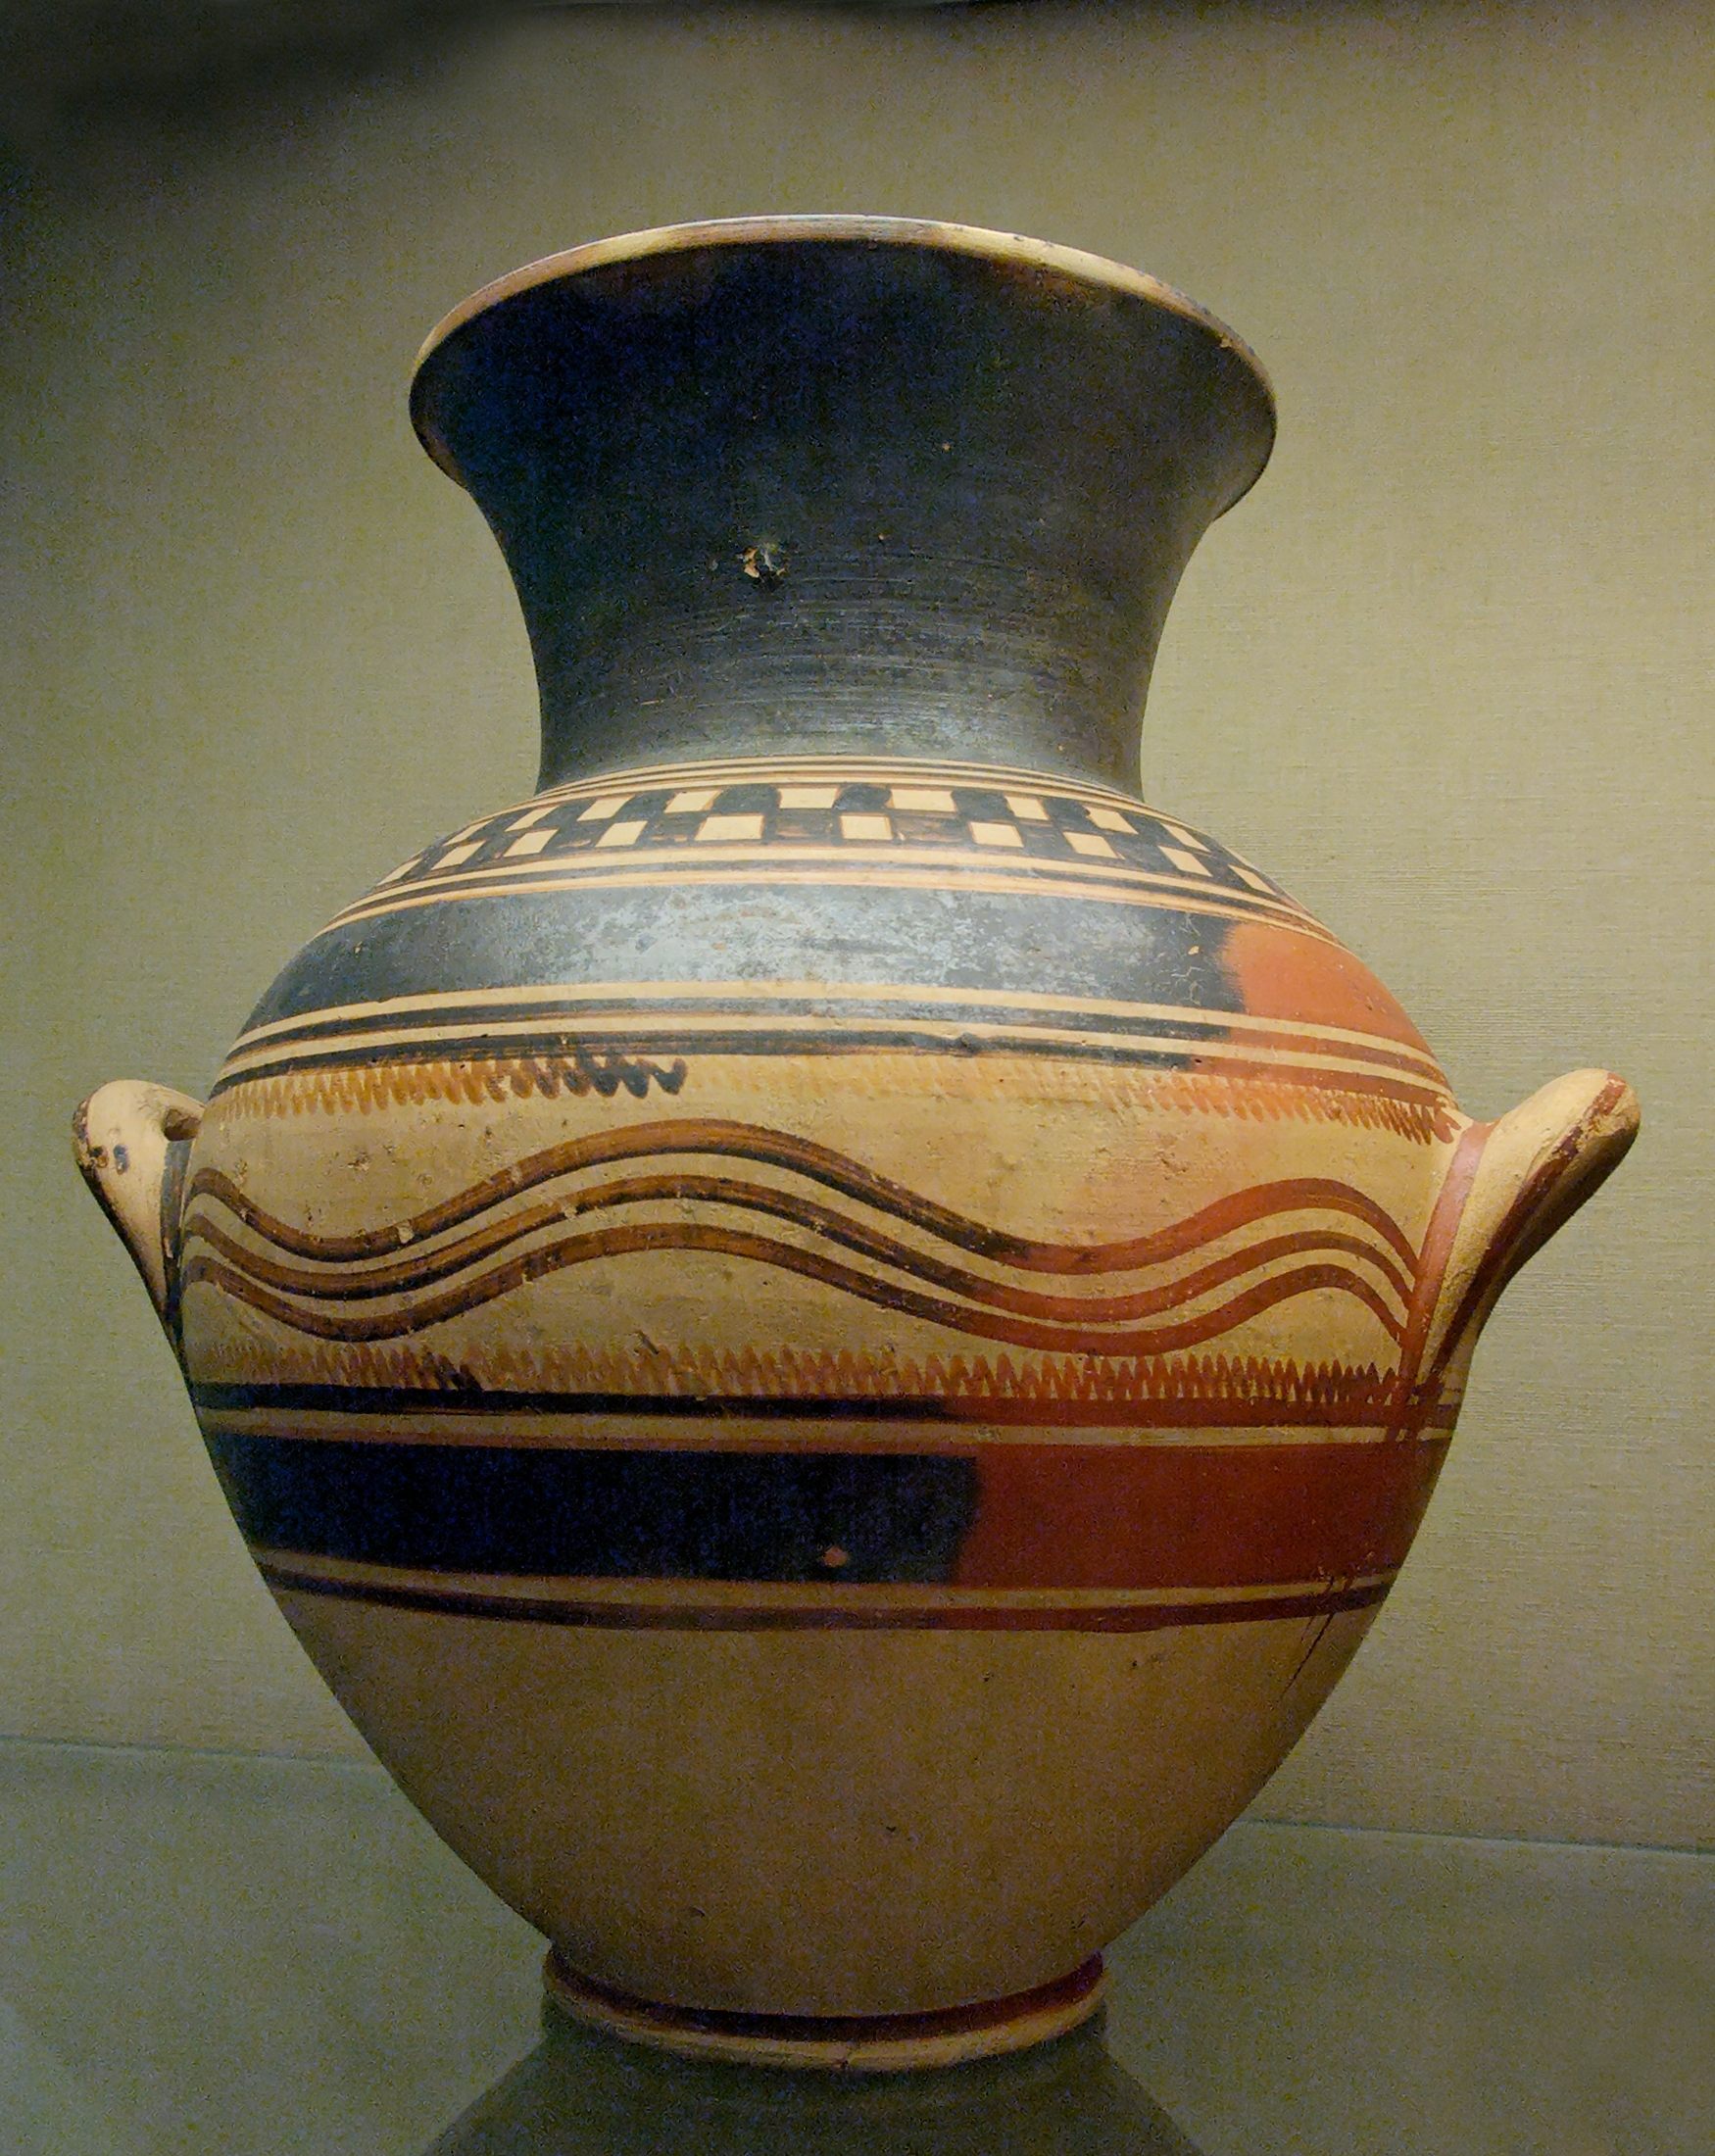 Assignment writers uk best place to buy custom essays writing our vase was potted by nicosthenes it was painted like all the other nicosthenic neck amphorae reviewsmspy